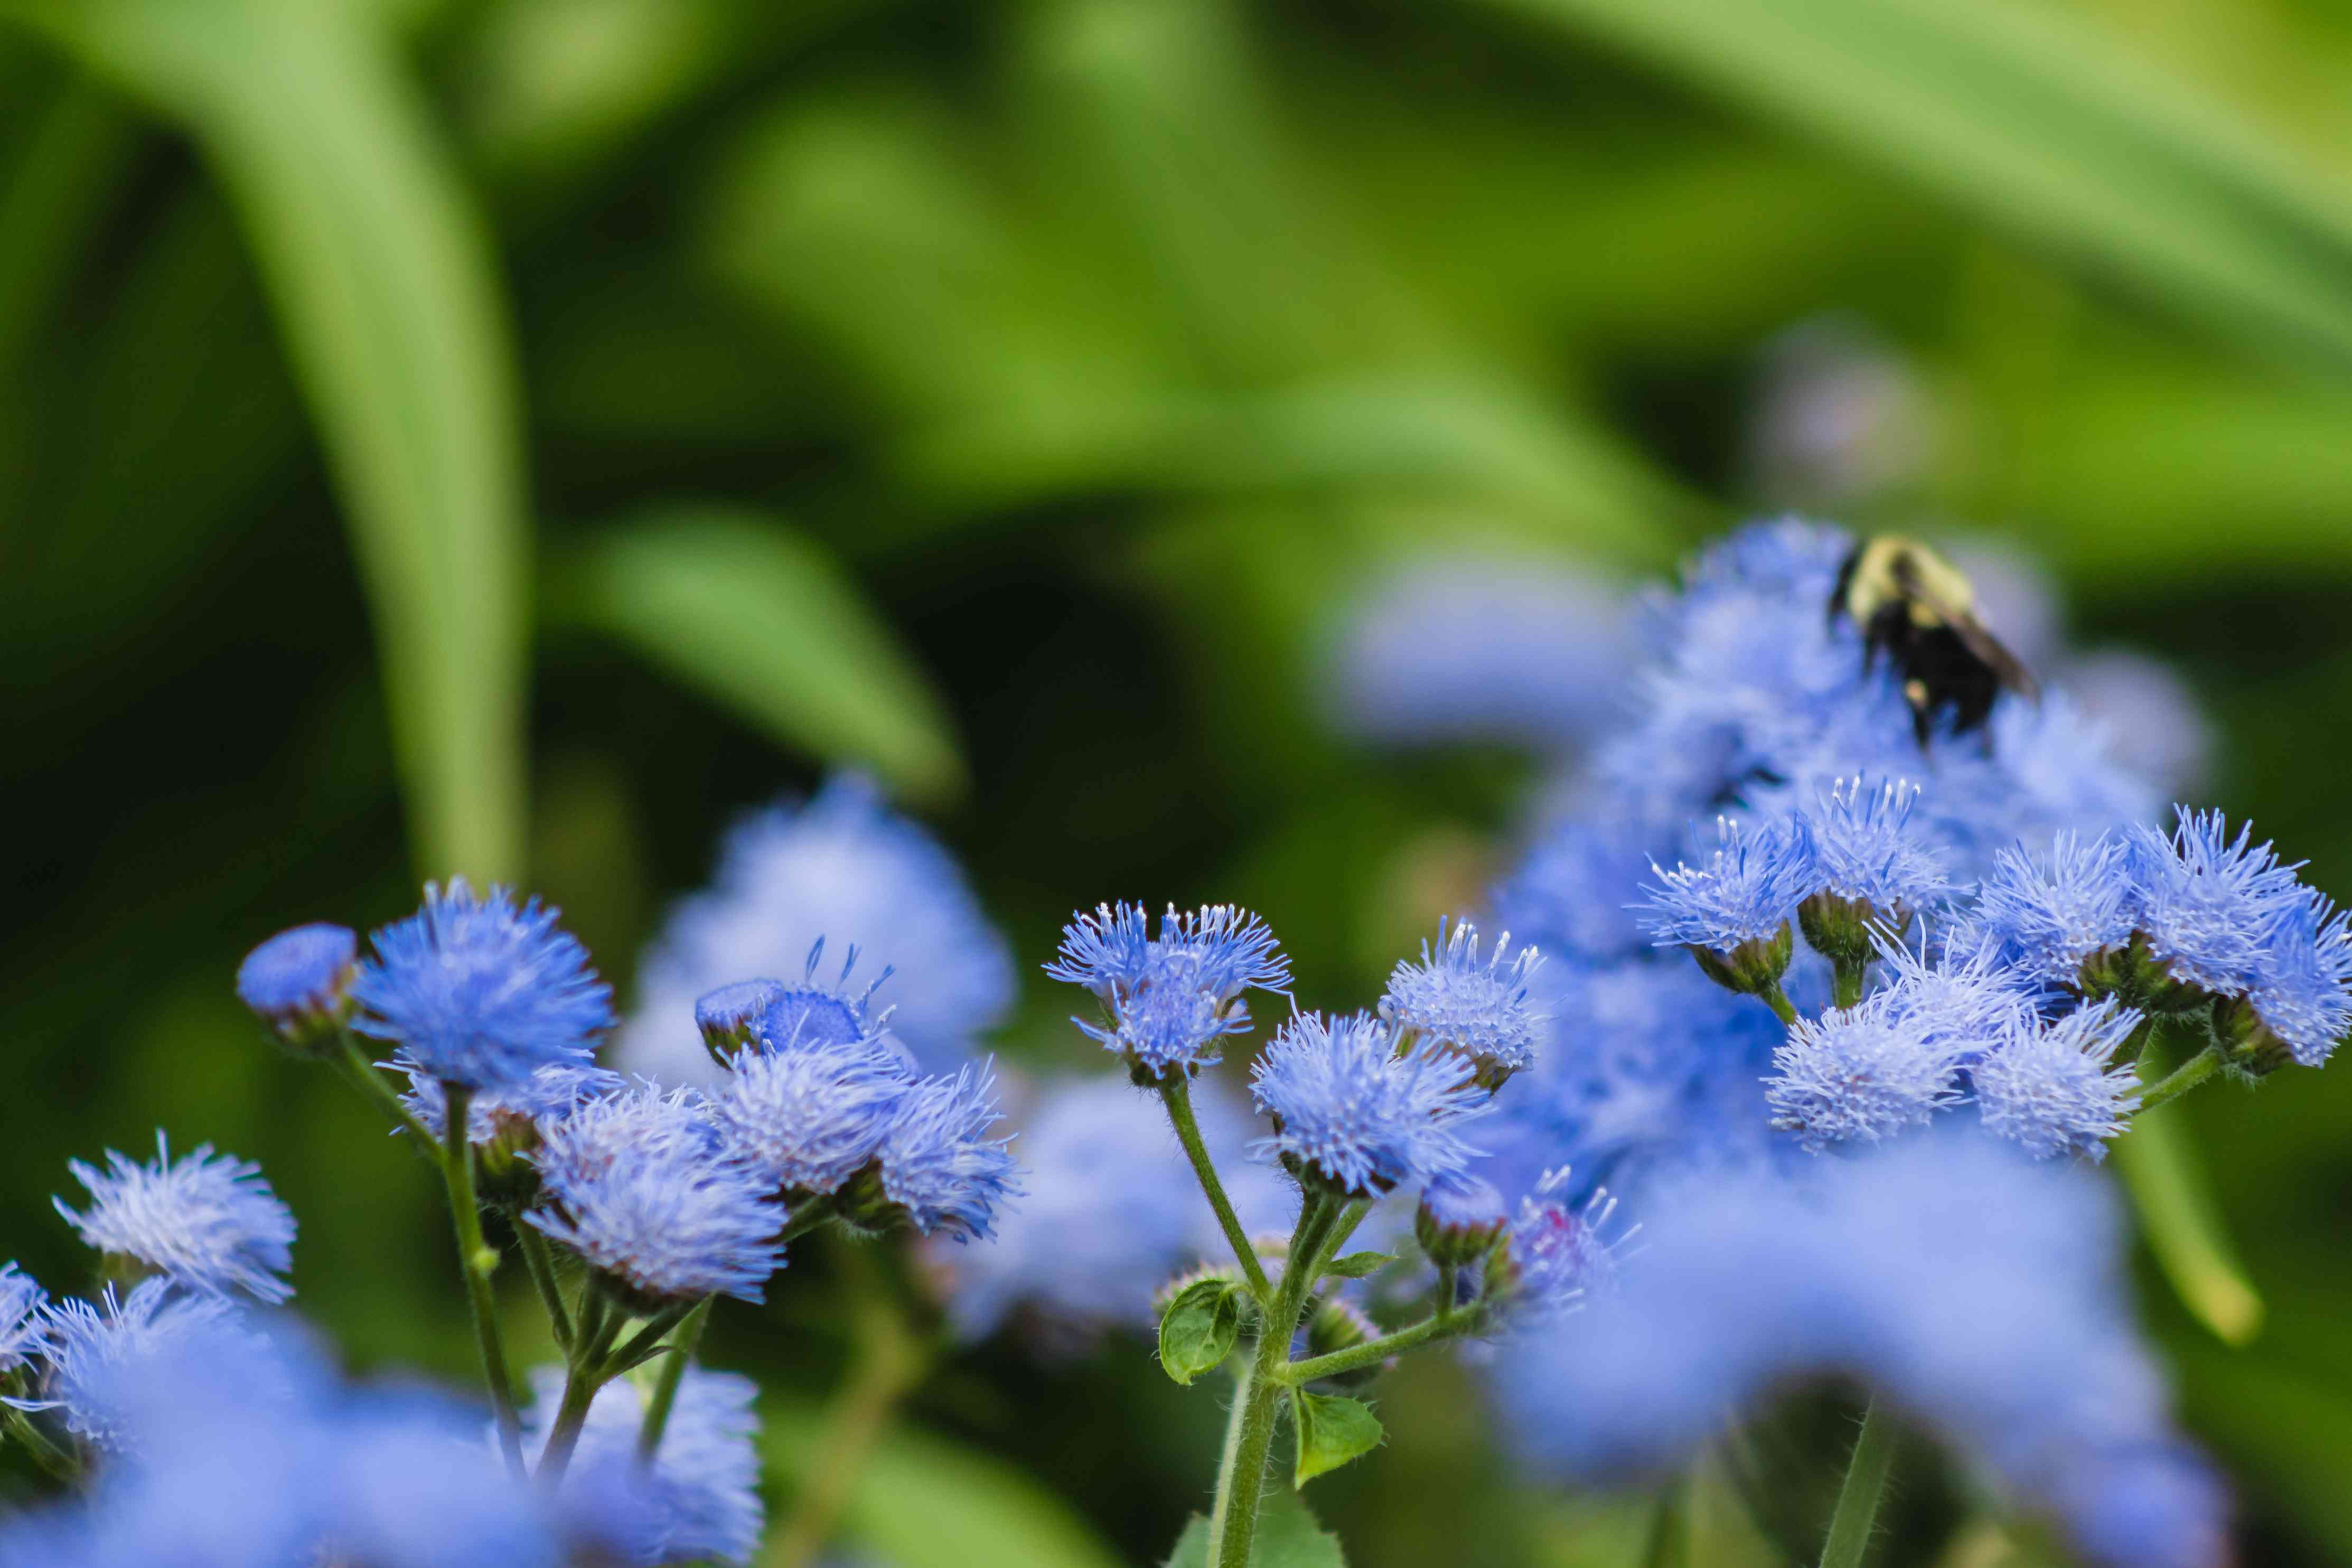 Blue ageratum with blue flowers and leaves and bee in background